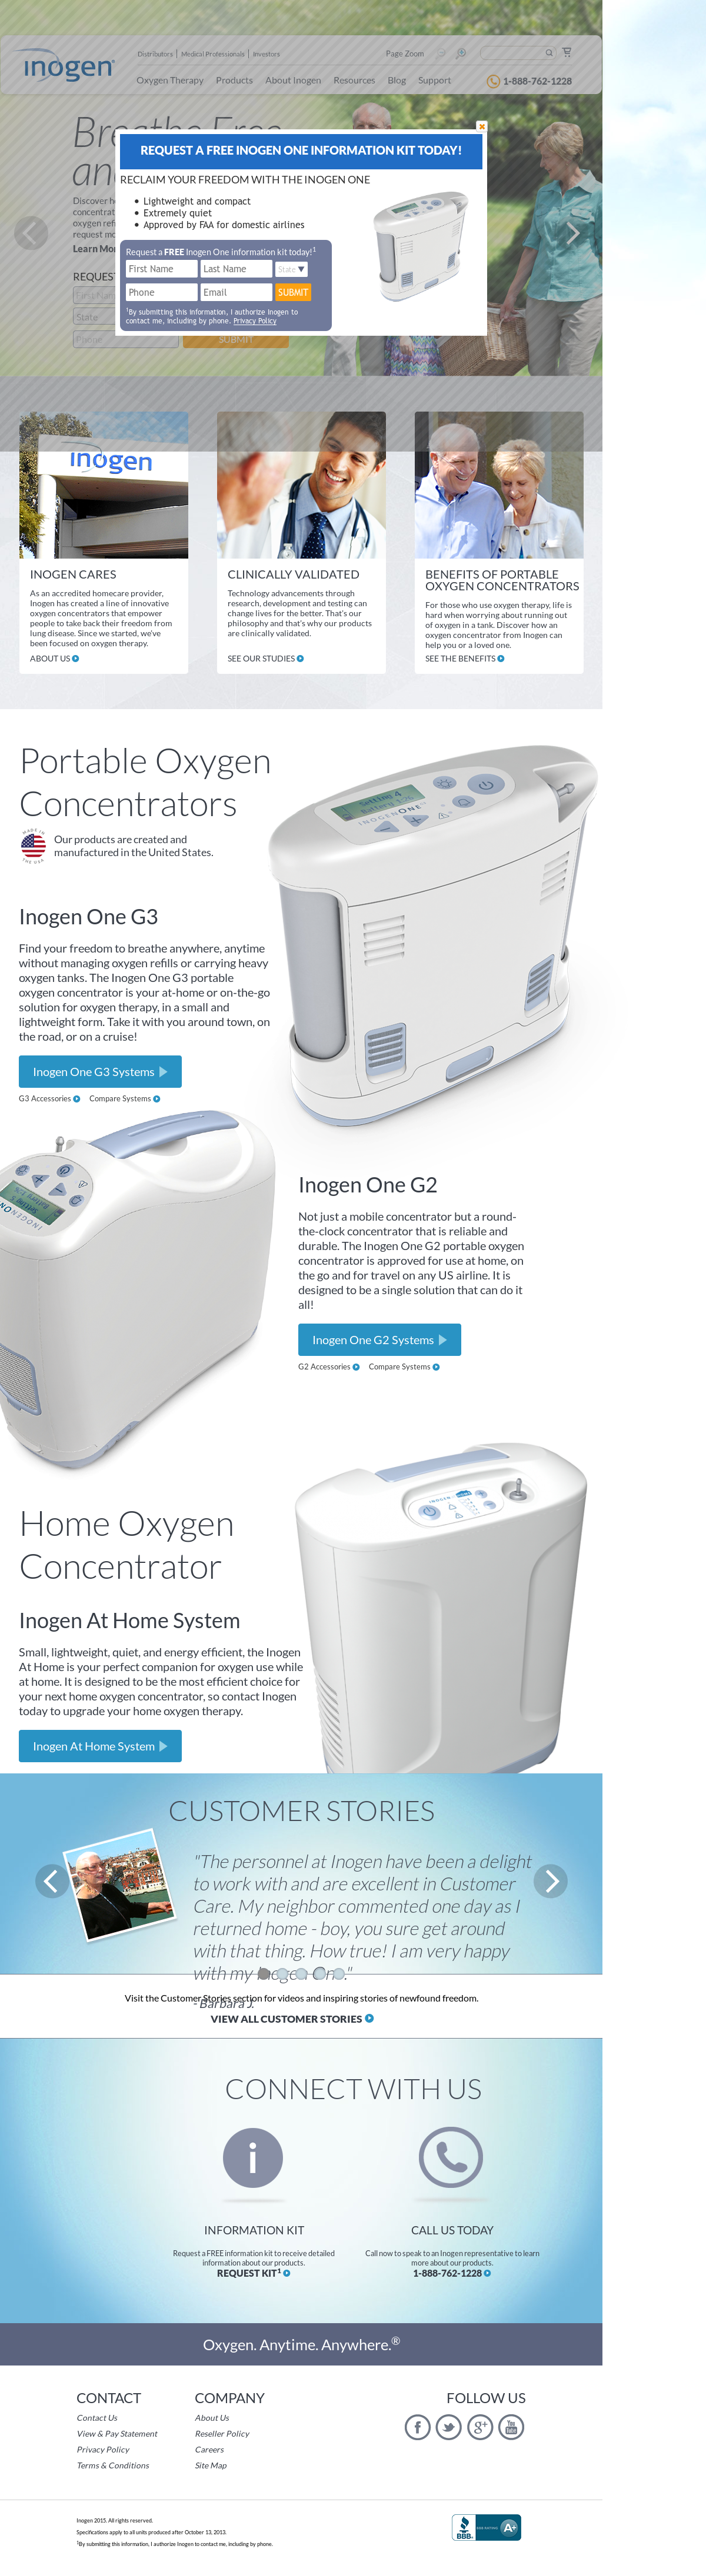 Inogen Competitors, Revenue and Employees - Owler Company